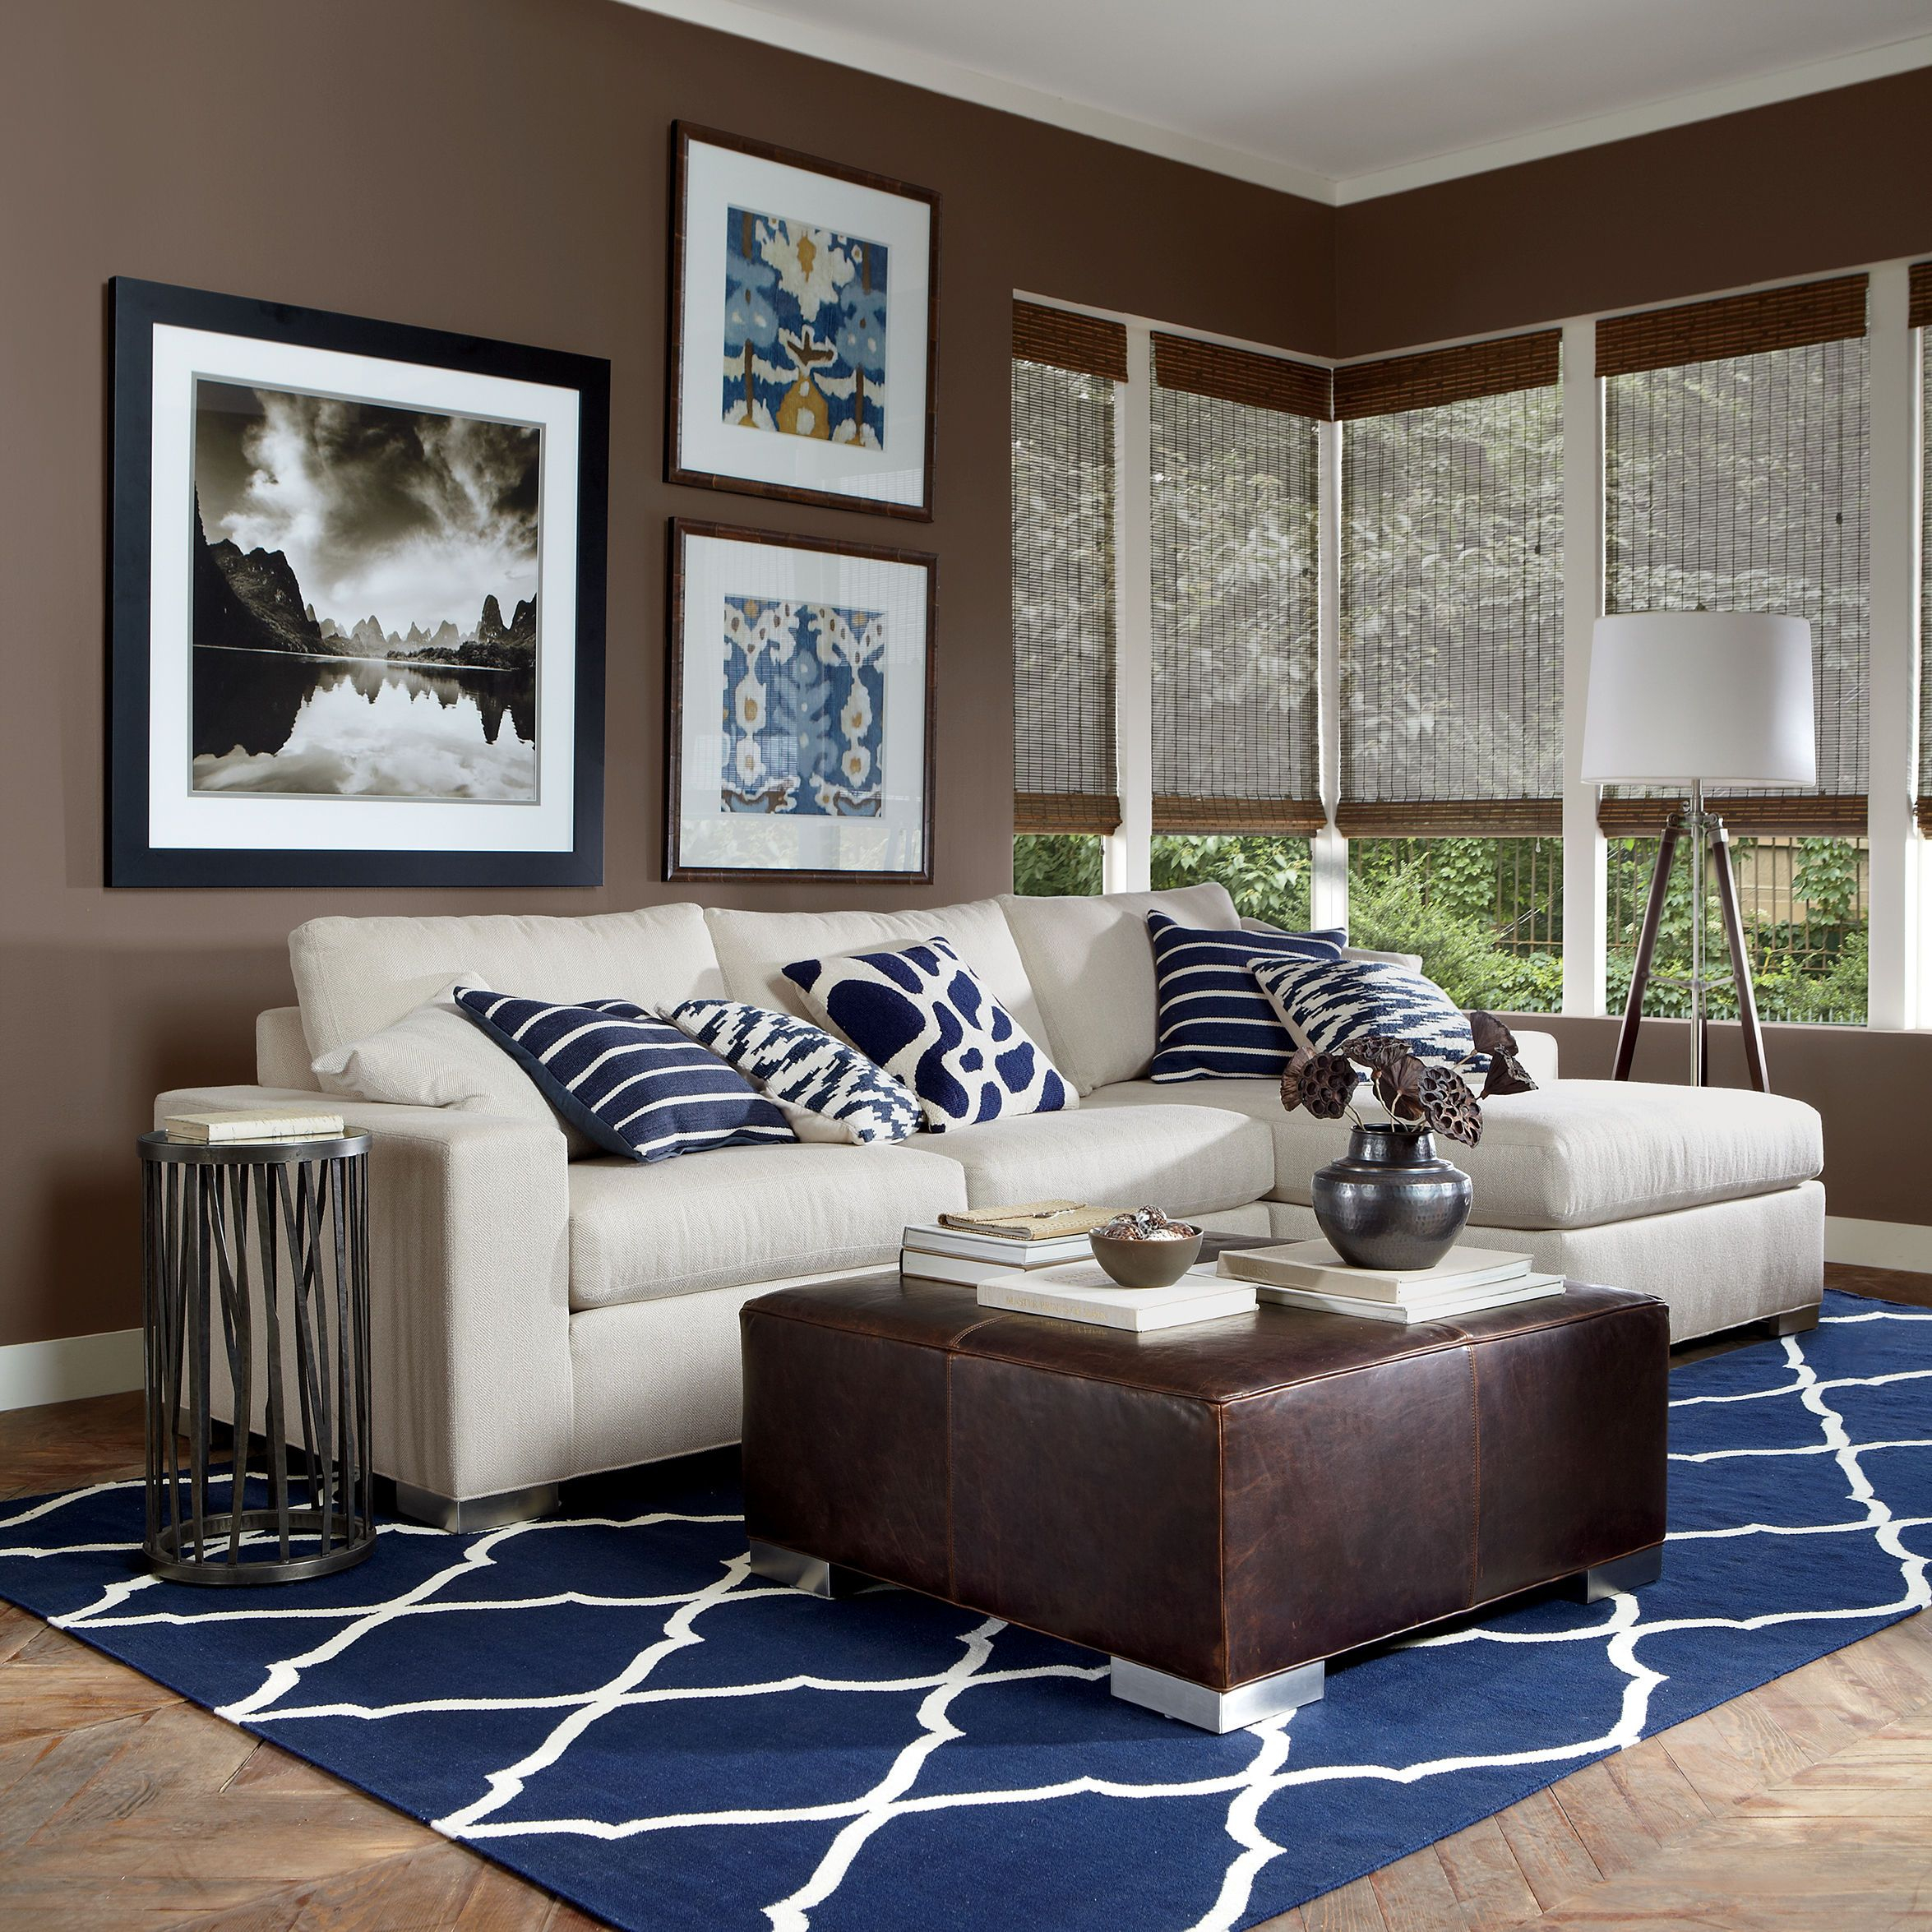 Surveyors Floor Lamp In 2019 Ethan Allen Brown Blue Living